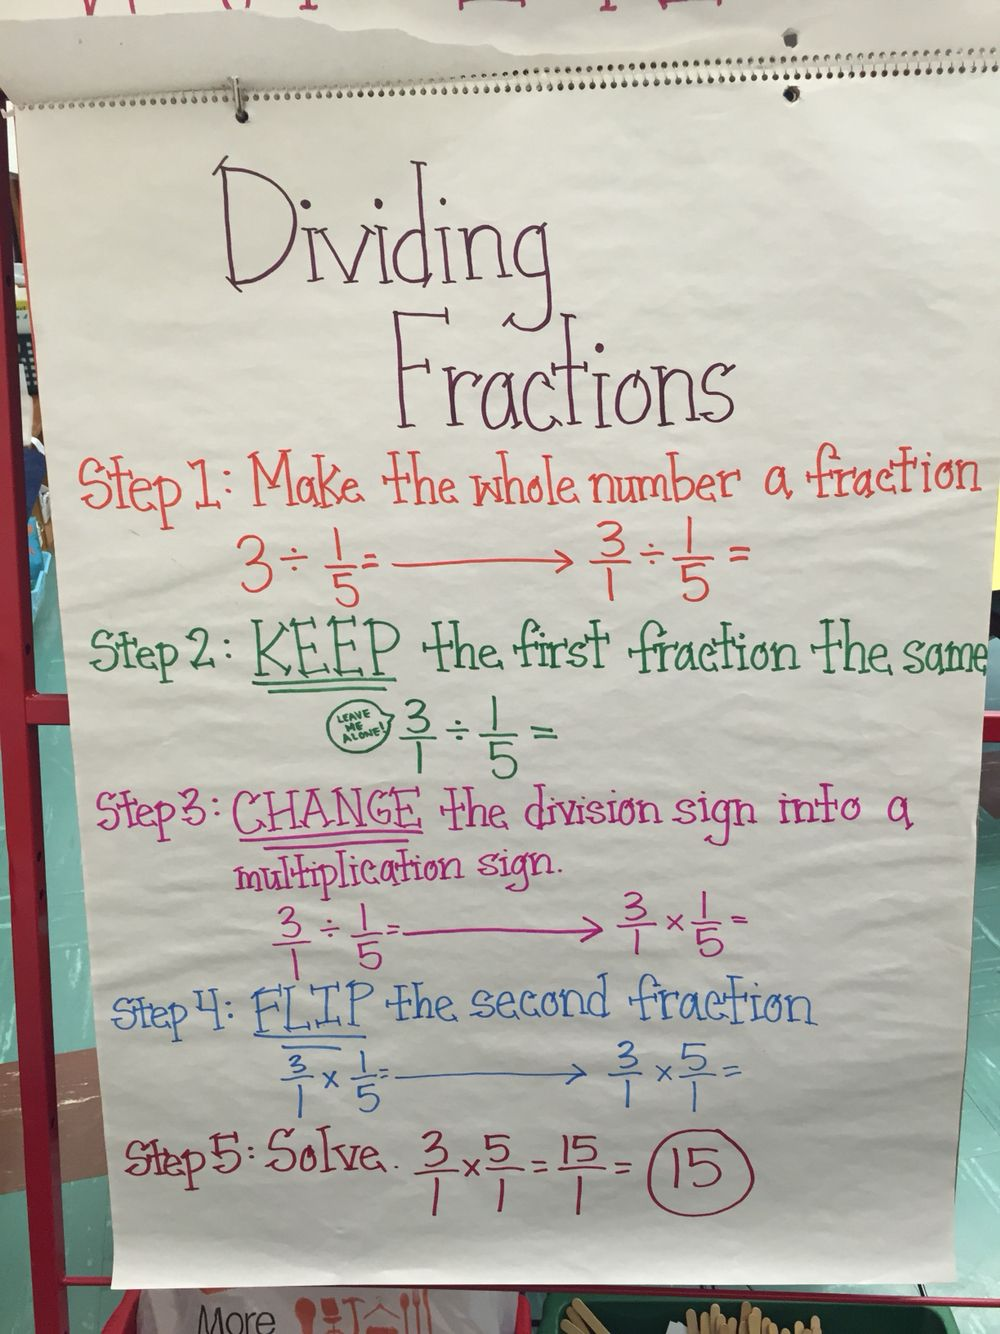 dividing fractions anchor chart | school projects | pinterest